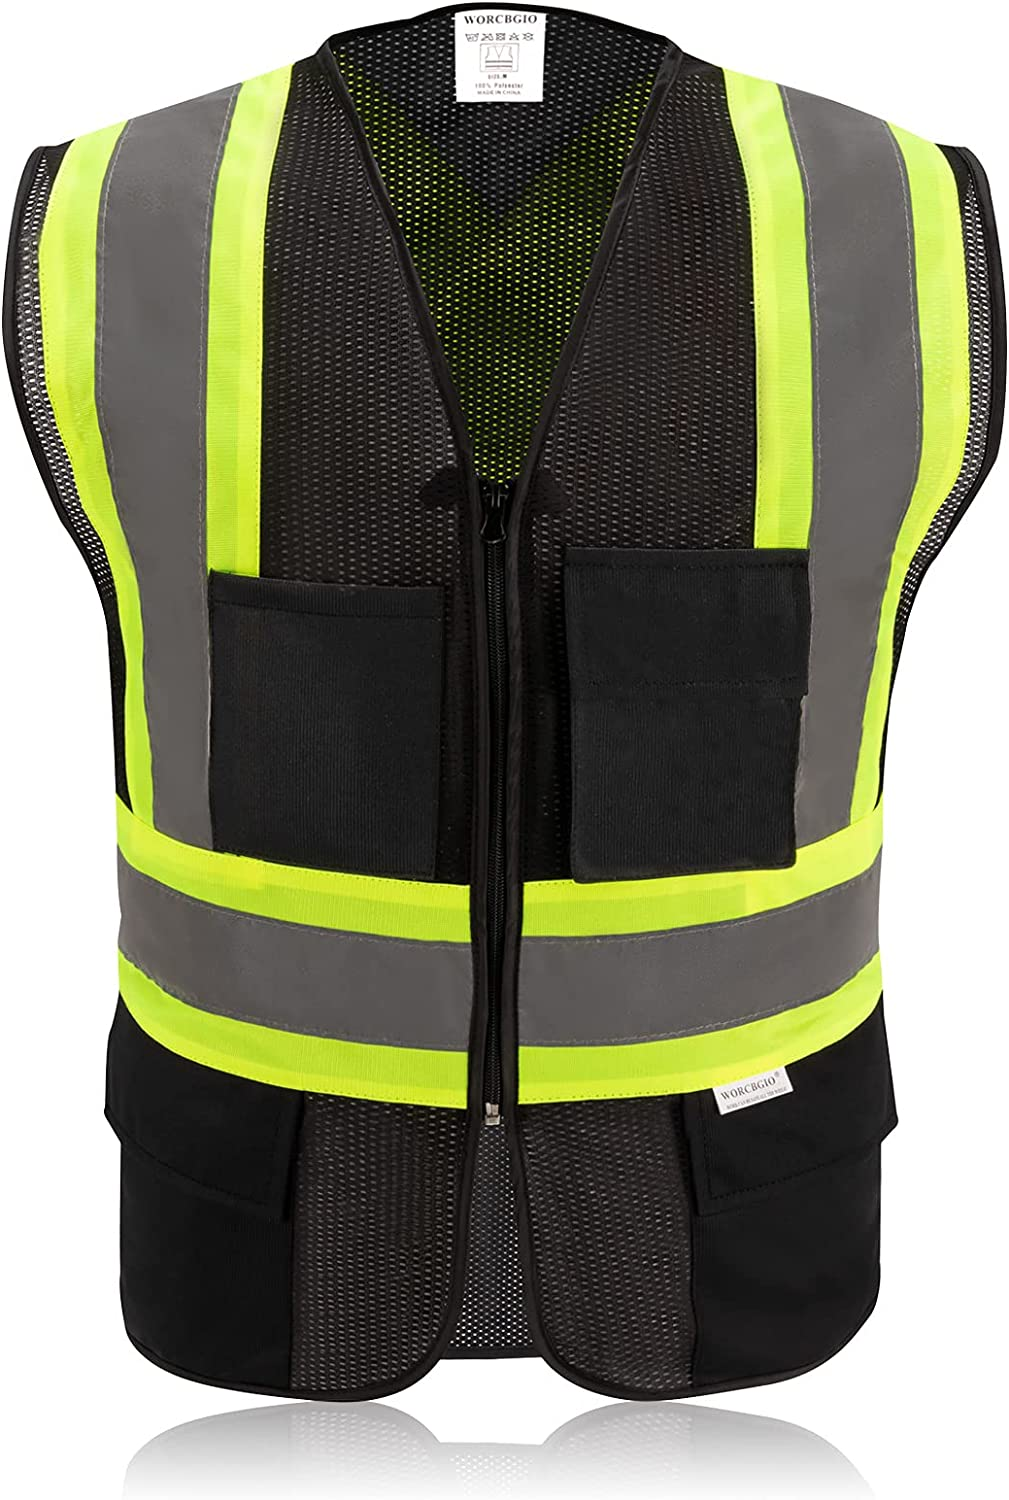 WORCBGIO Safety Vest with X-Shaped Reflective Animer and price revision High St Max 60% OFF Visibility